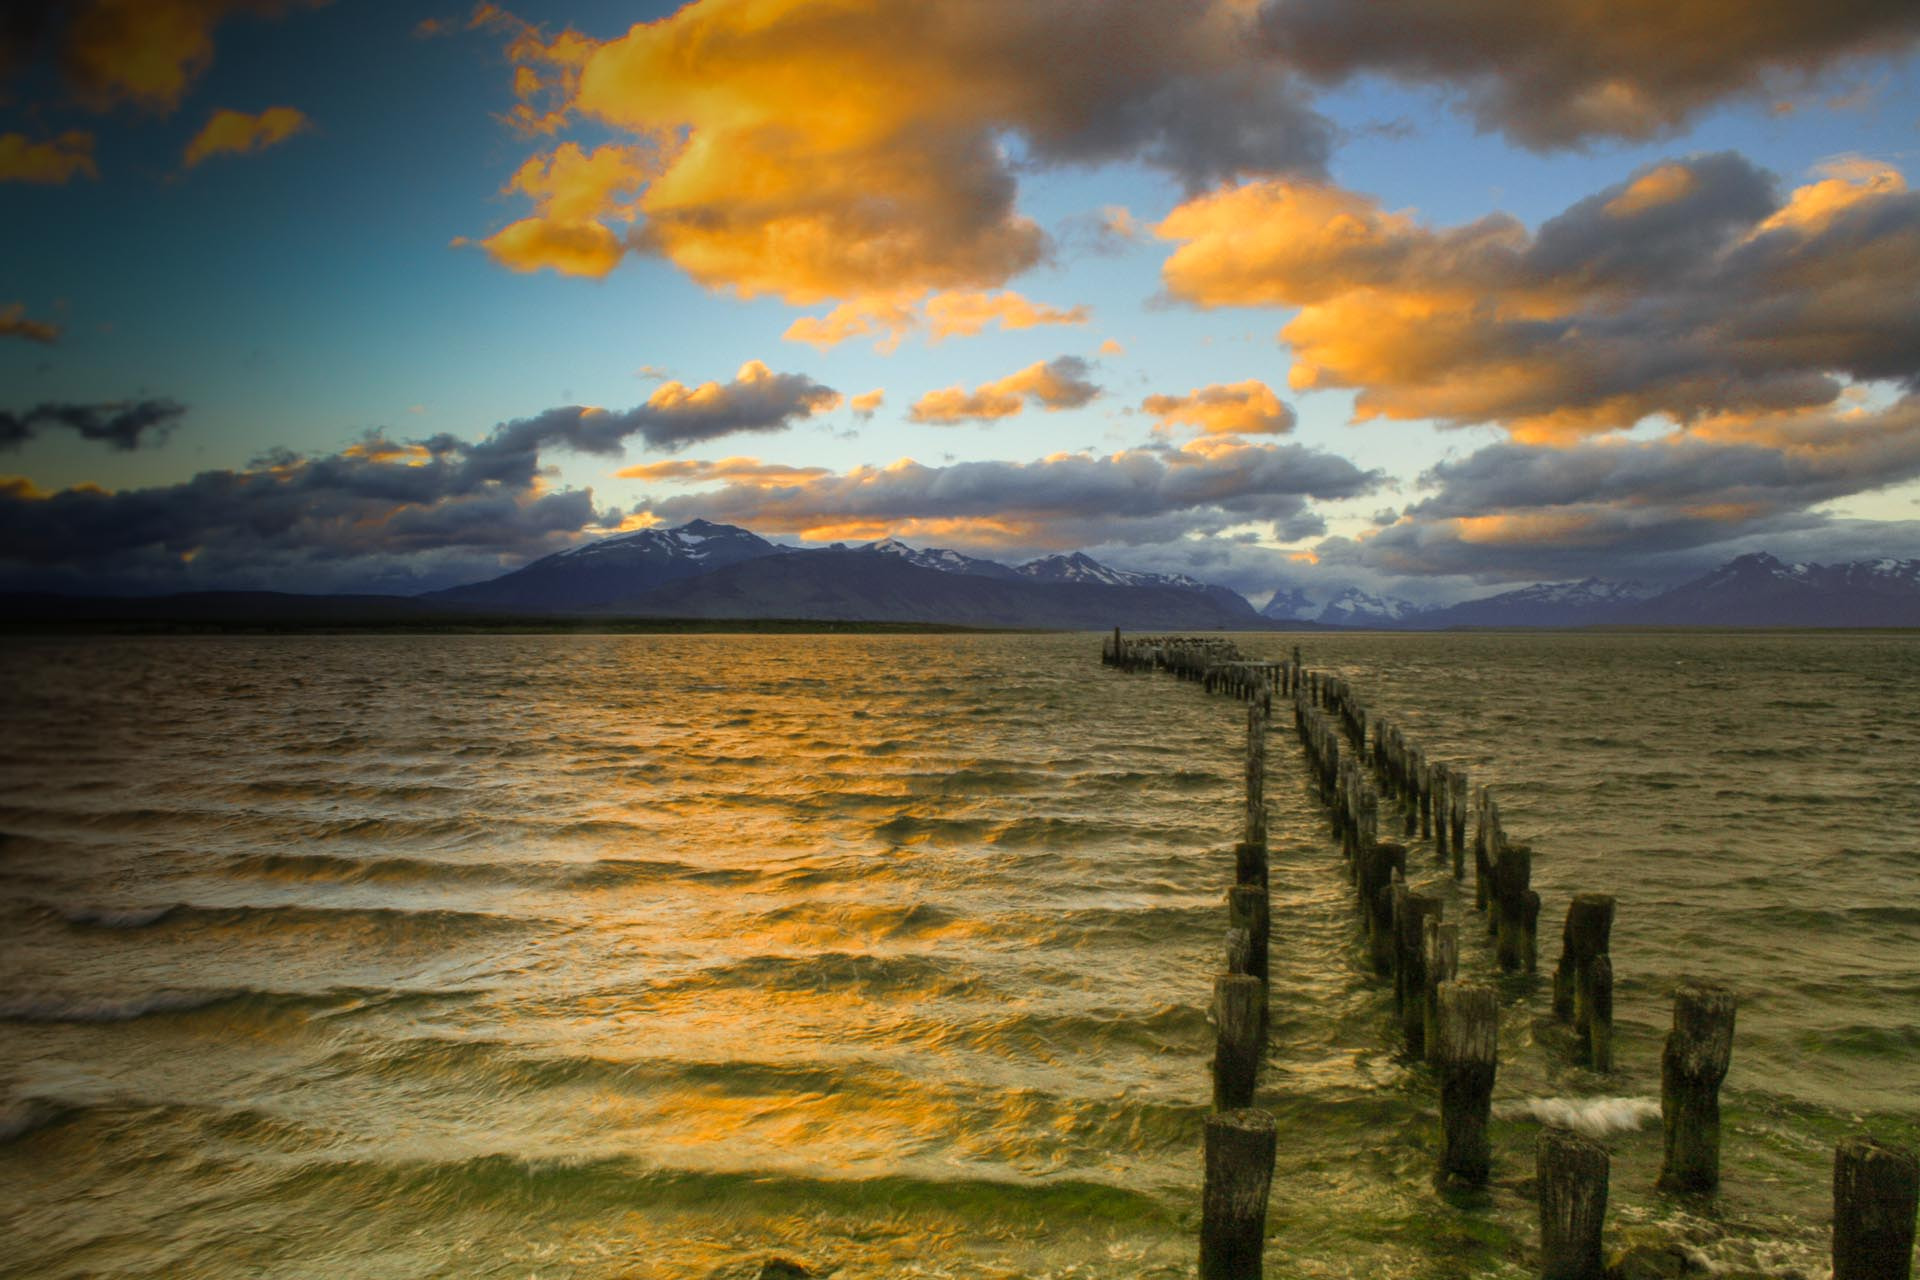 Photograph Sunset at Puerto Natales by Amit Shah on 500px